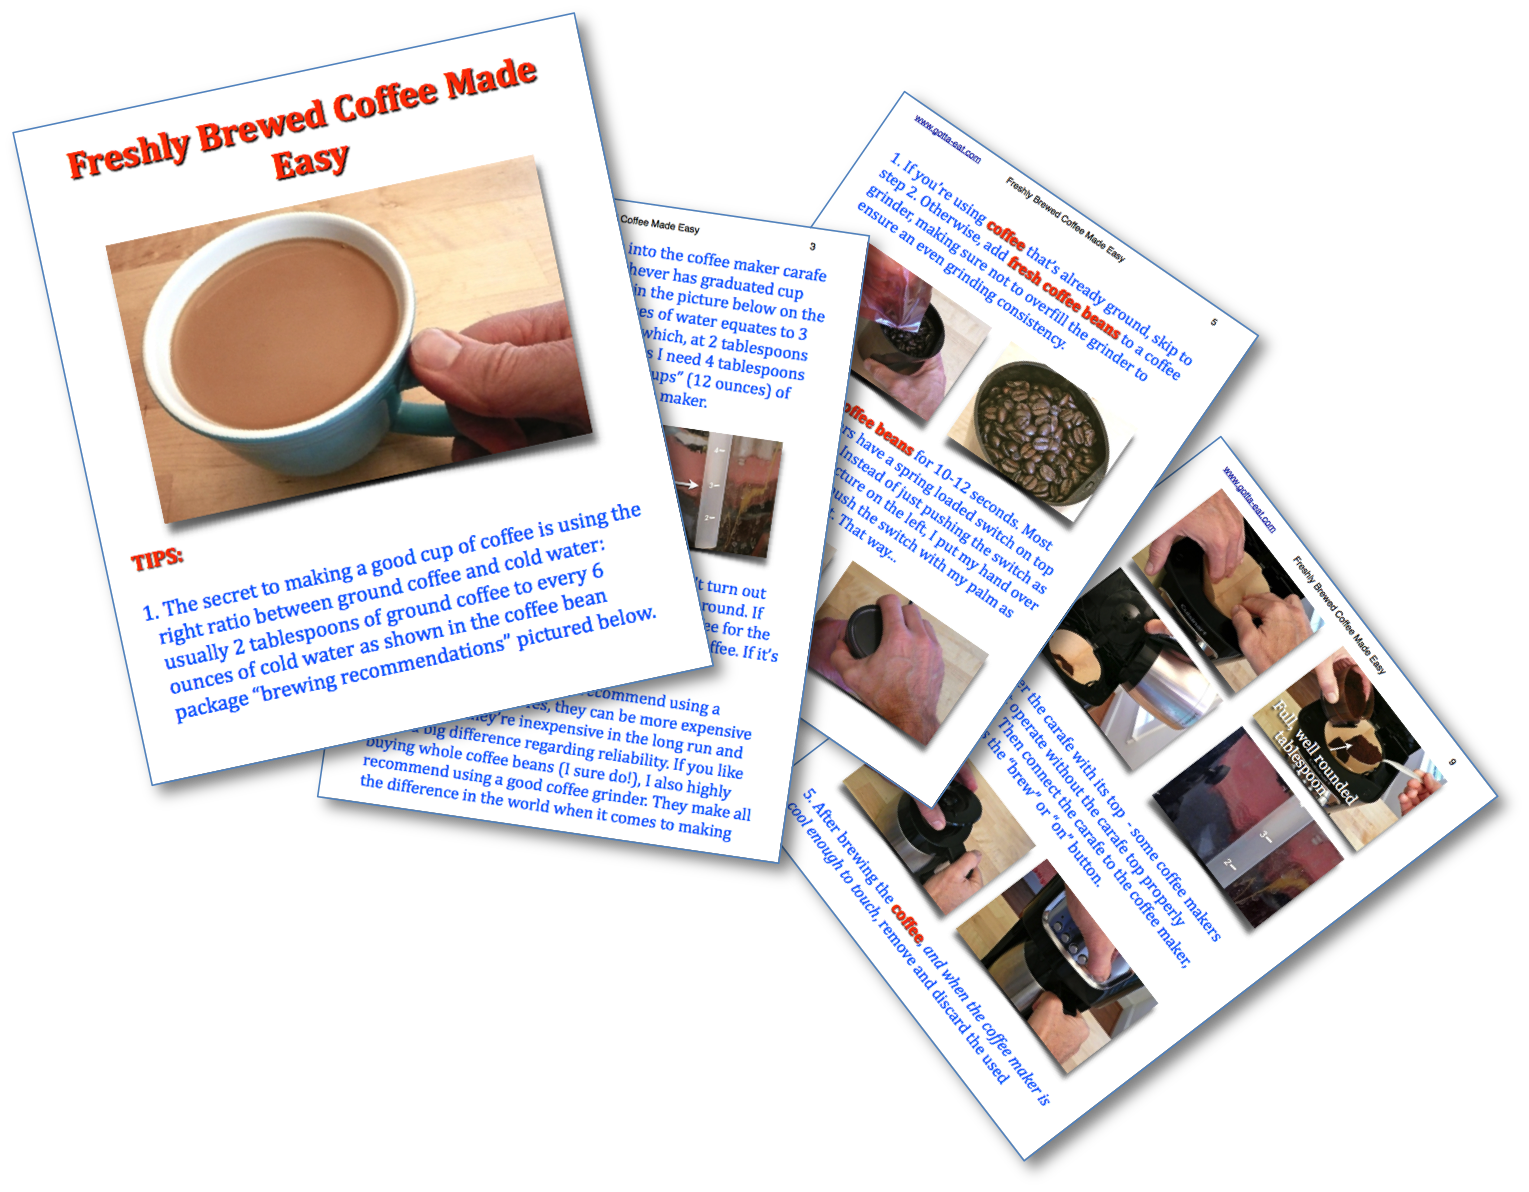 Waking Up To Freshly Brewed Coffee Made Easy And All In Pictures 3 Way Switch Step By Picture Book Recipe Pages